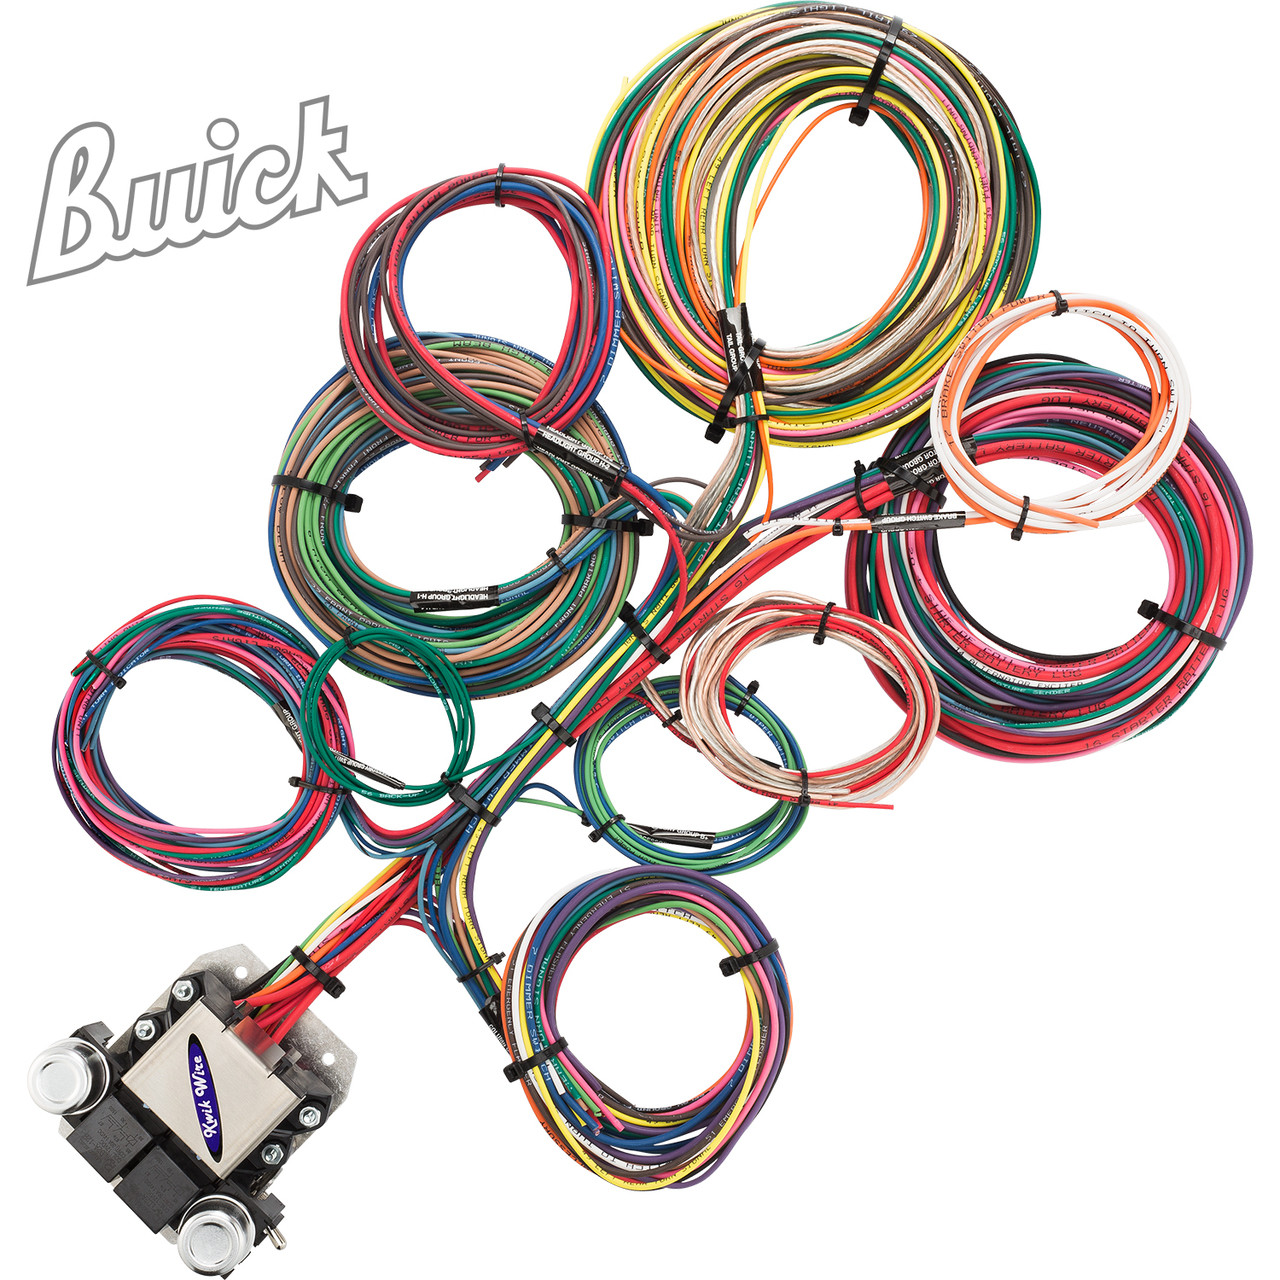 Vendor Street Rod Wiring Harness Diagrams Chevy Diagram 8 Circuit Kwik Wire Ford 2 3 Universal